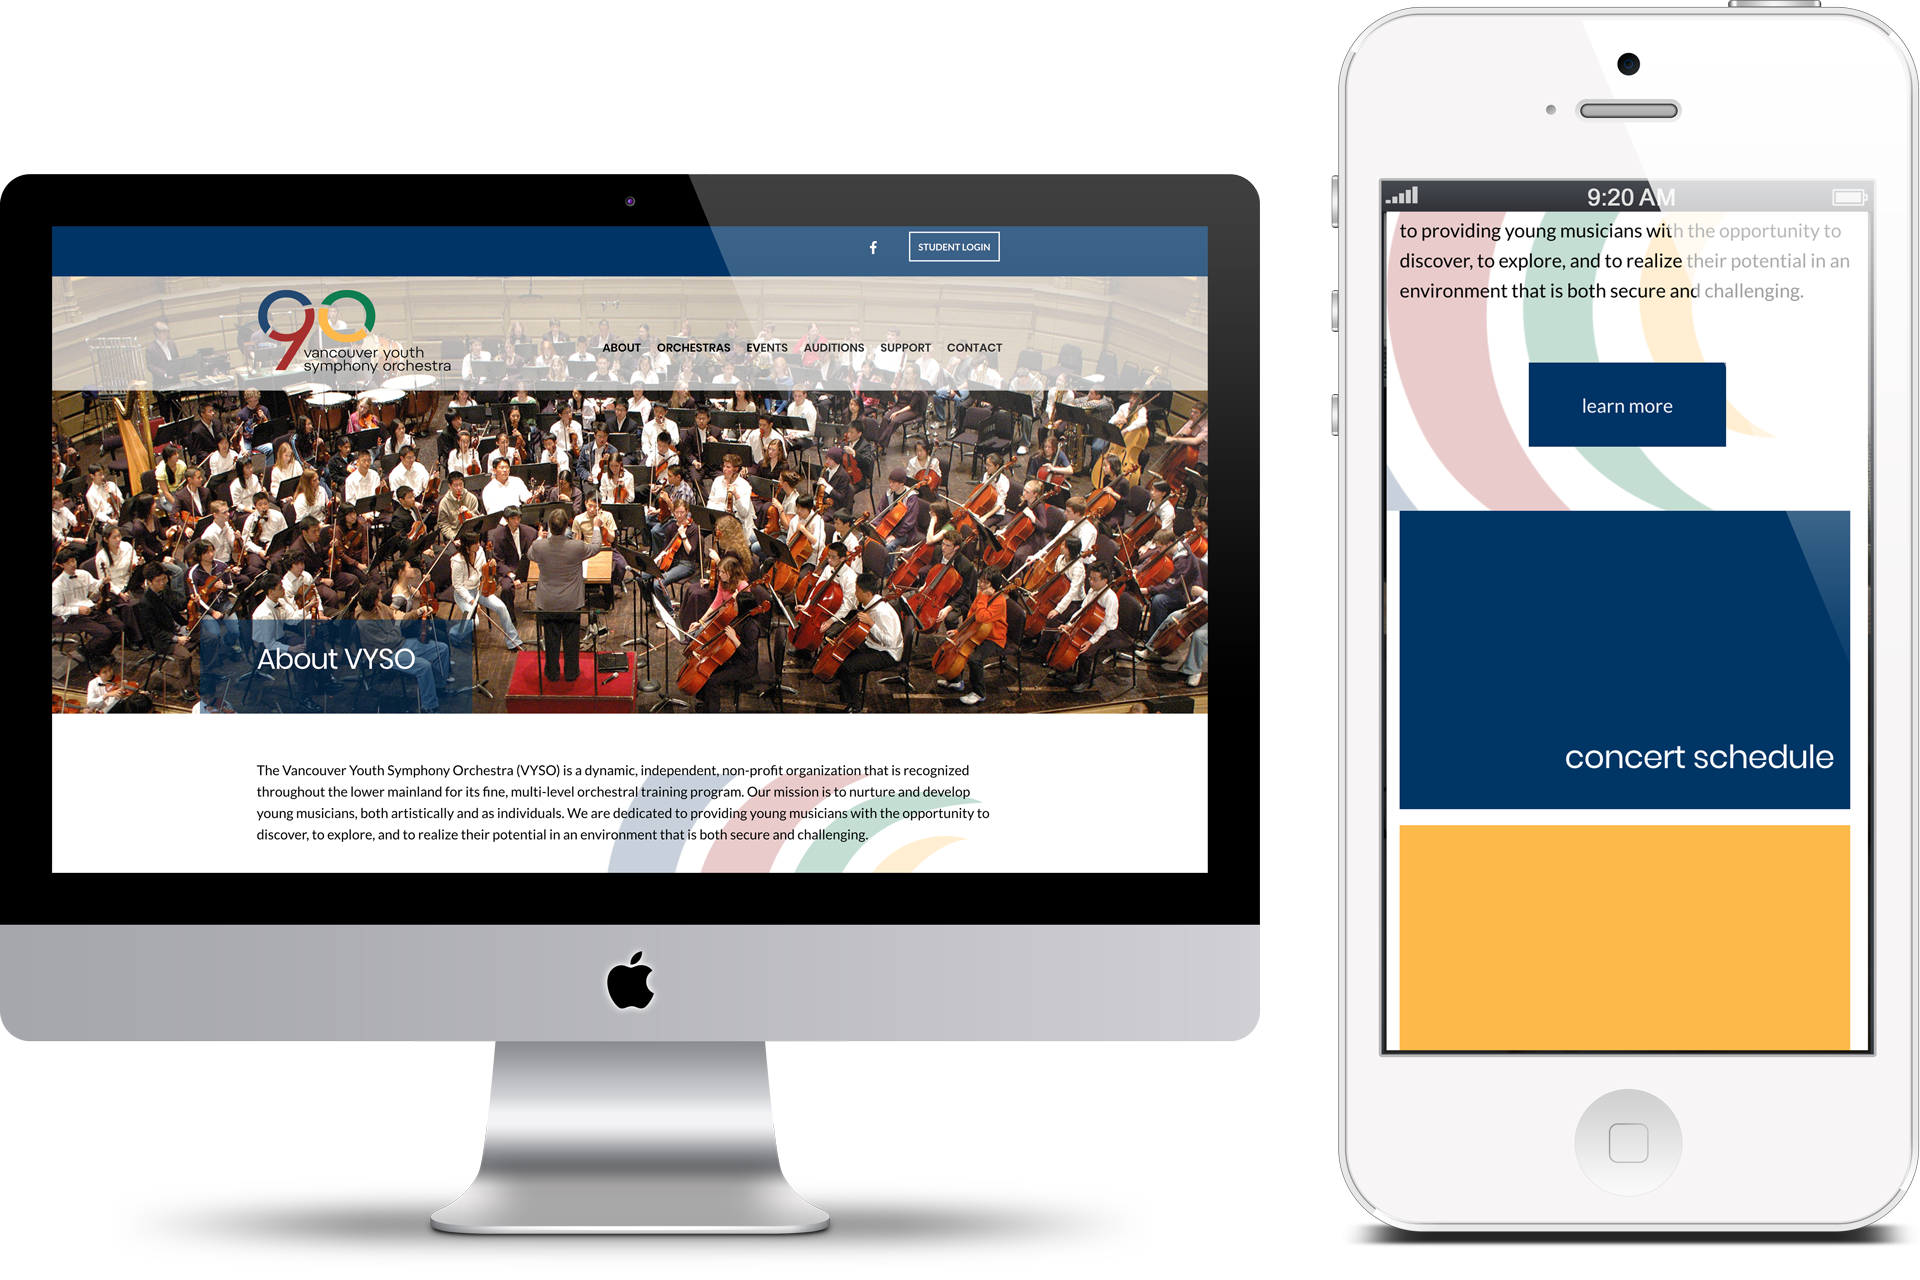 Vancouver Youth Symphony Orchestra Digital Marketing project in Scope Creative's Portfolio